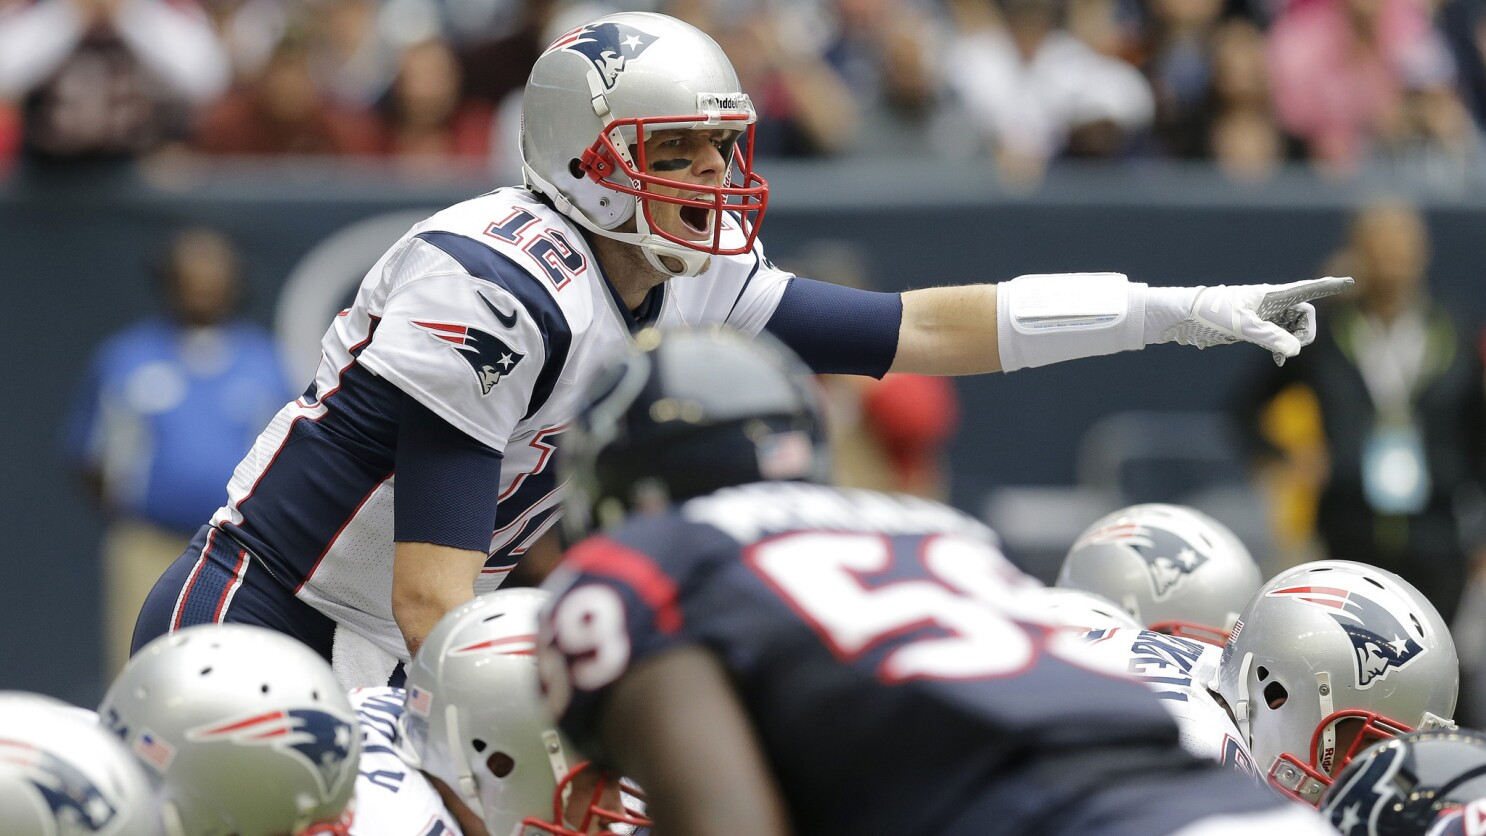 Morning Briefing: Don't aim a laser pointer at Tom Brady or you'll be singed in court